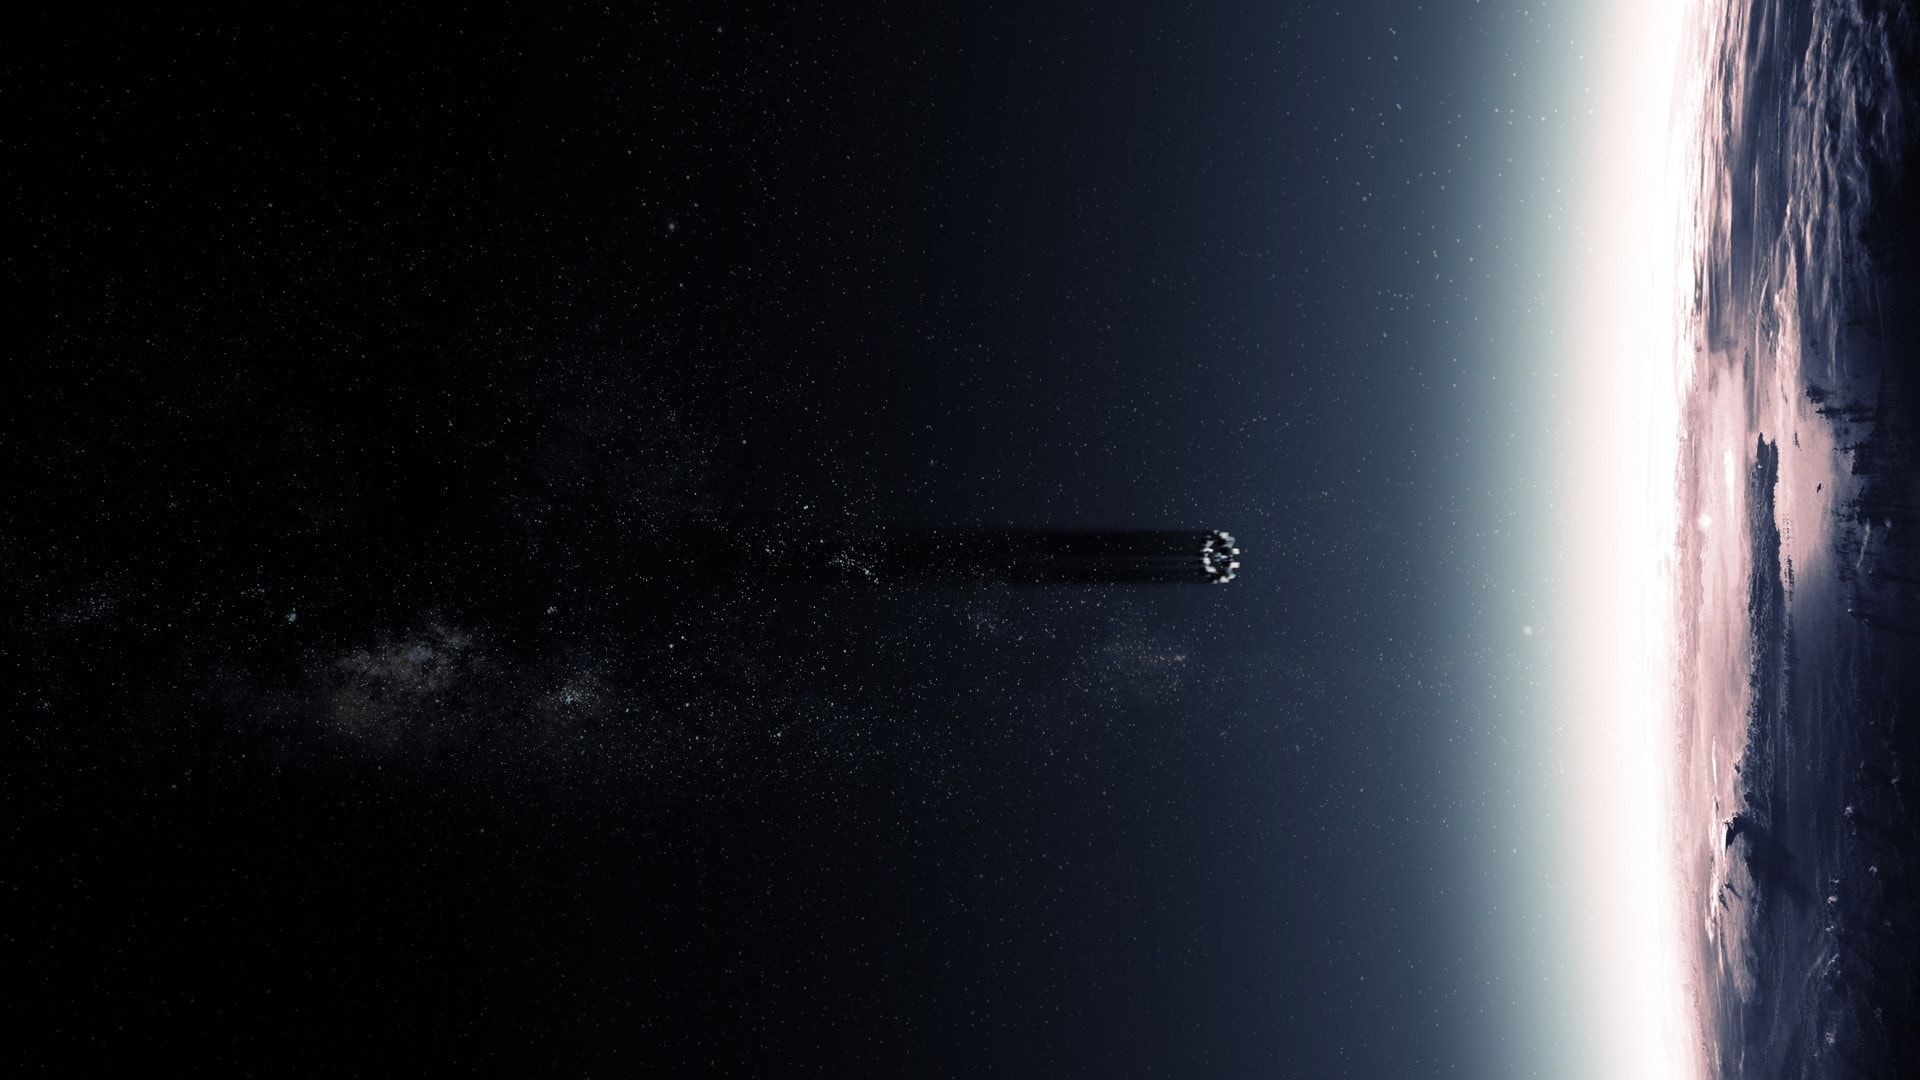 Interstellar PC Wallpaper HD